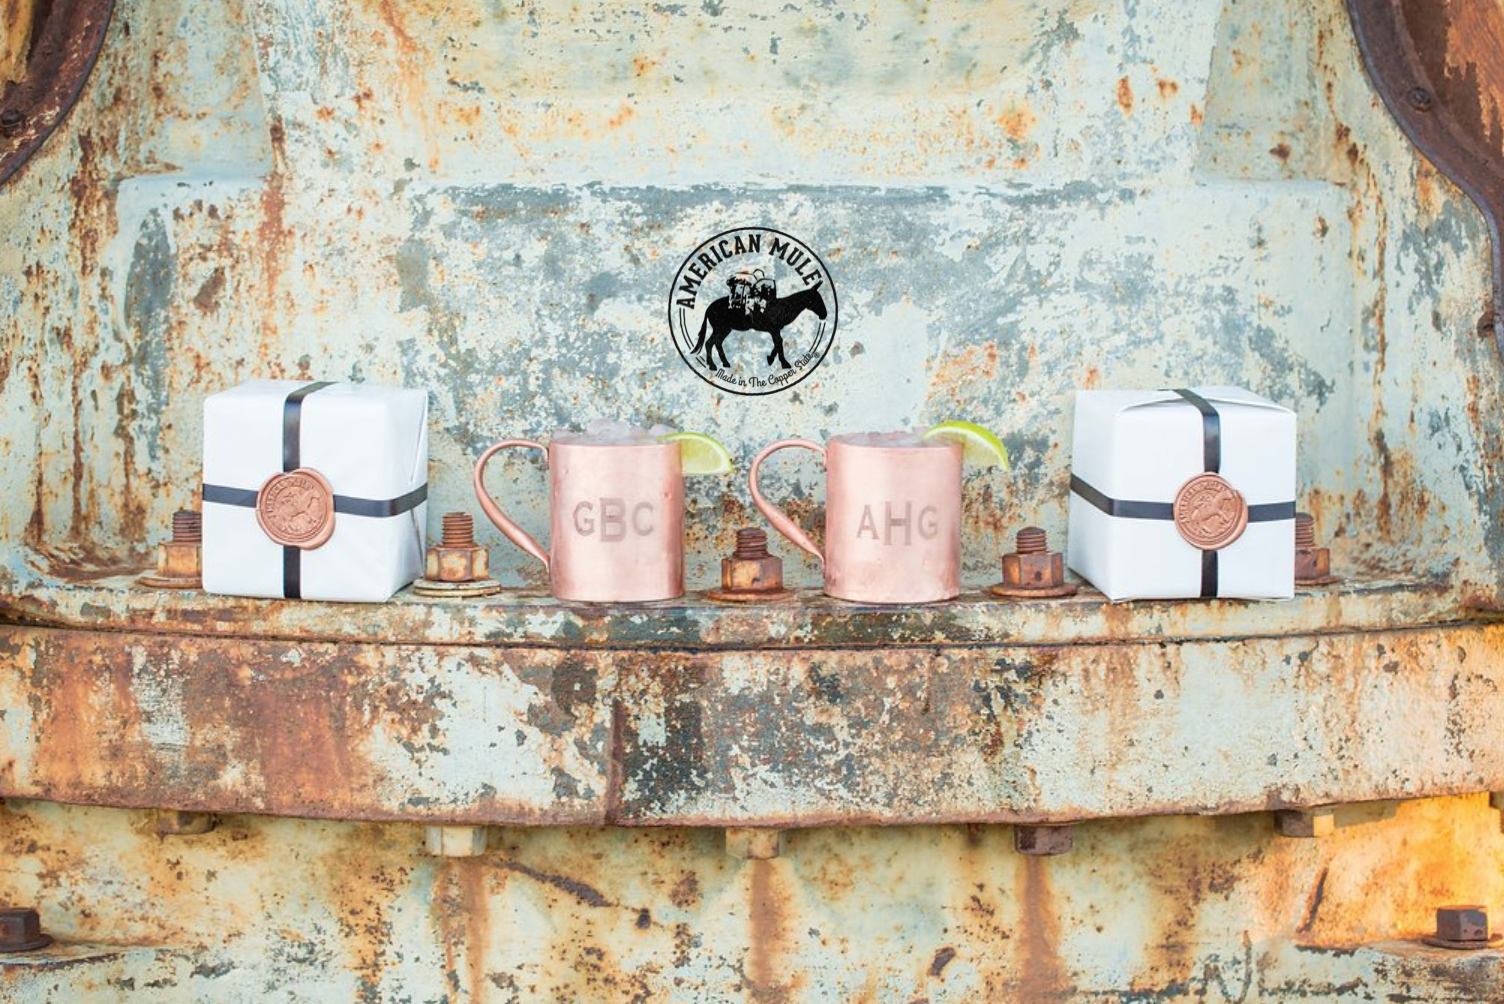 American Mule Custom-Monogram is a quality gift for corporate events and many special occasions. Photo by Danielle Apple Photgraphy